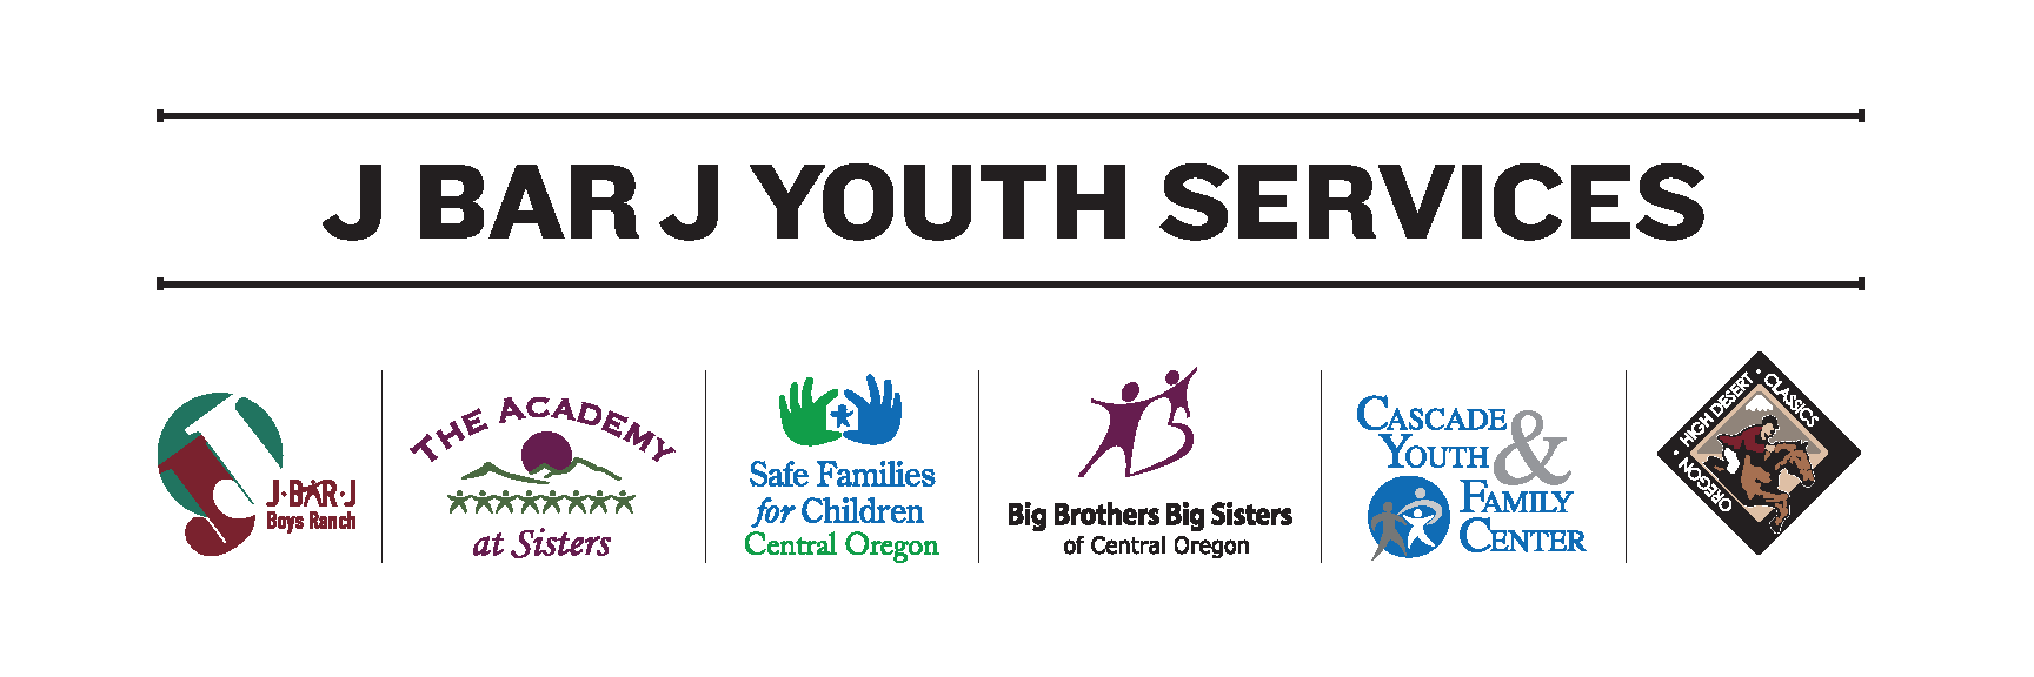 Big Brothers & Big Sisters of Central Oregon / J Bar J Youth Services